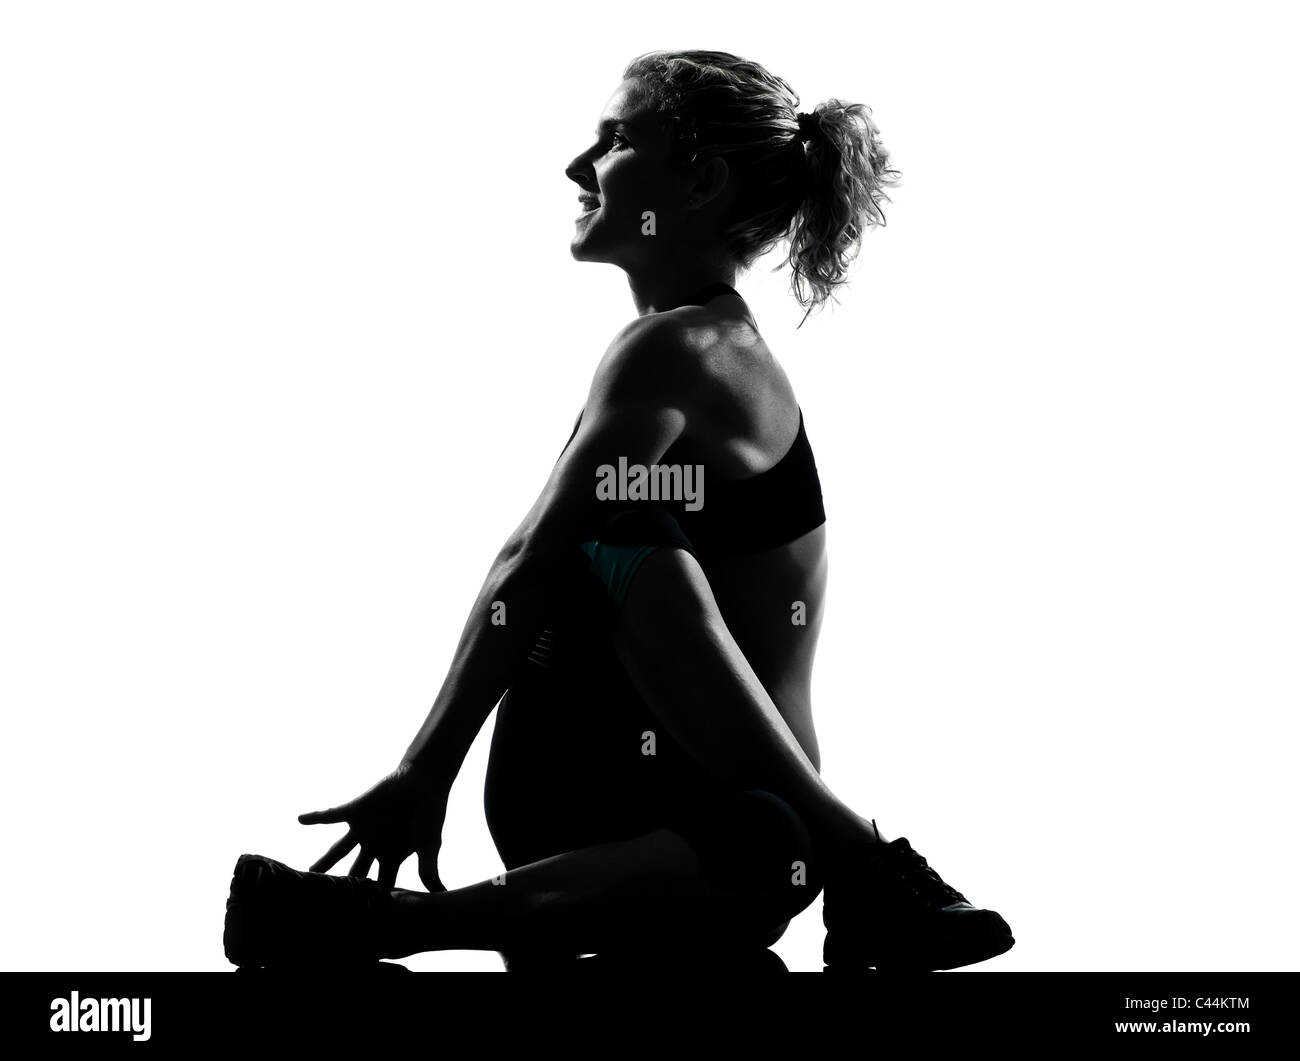 one woman exercising  warming up yoga stretching rotation fitness posture workout  aerobic posture on studio isolated - Stock Image